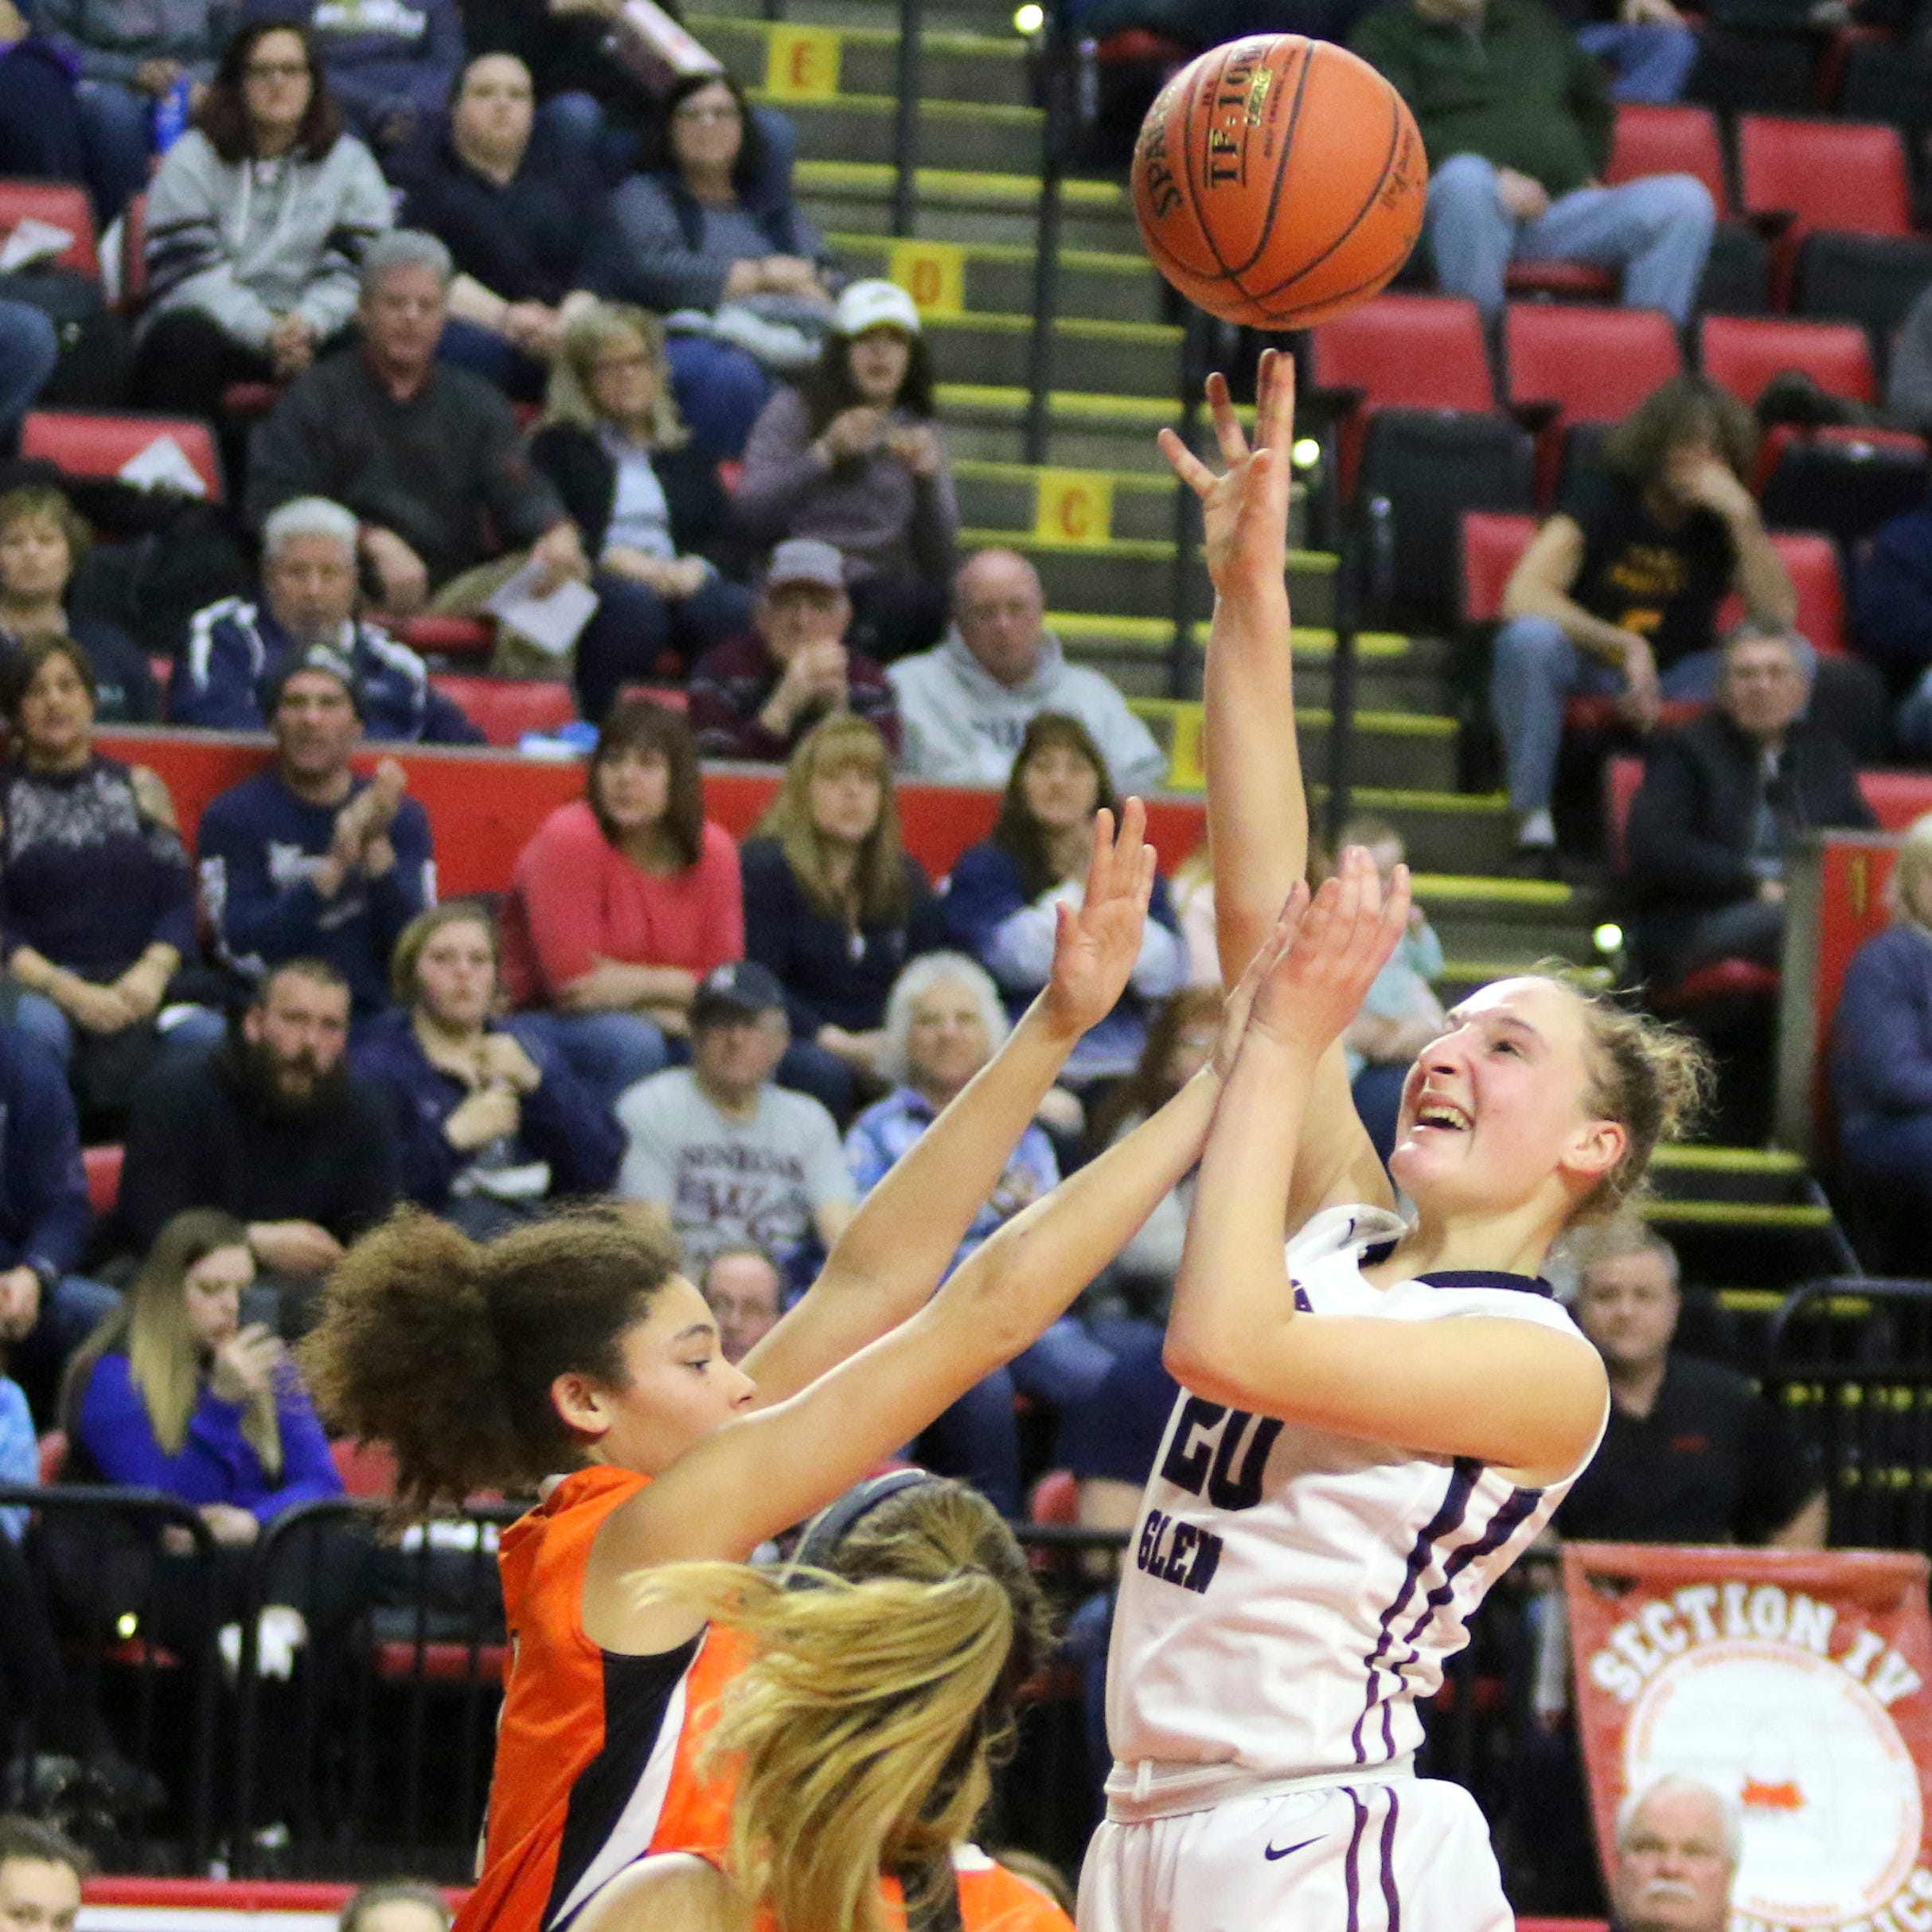 Watkins Glen girls roll into Class C state semifinals with win over Cooperstown